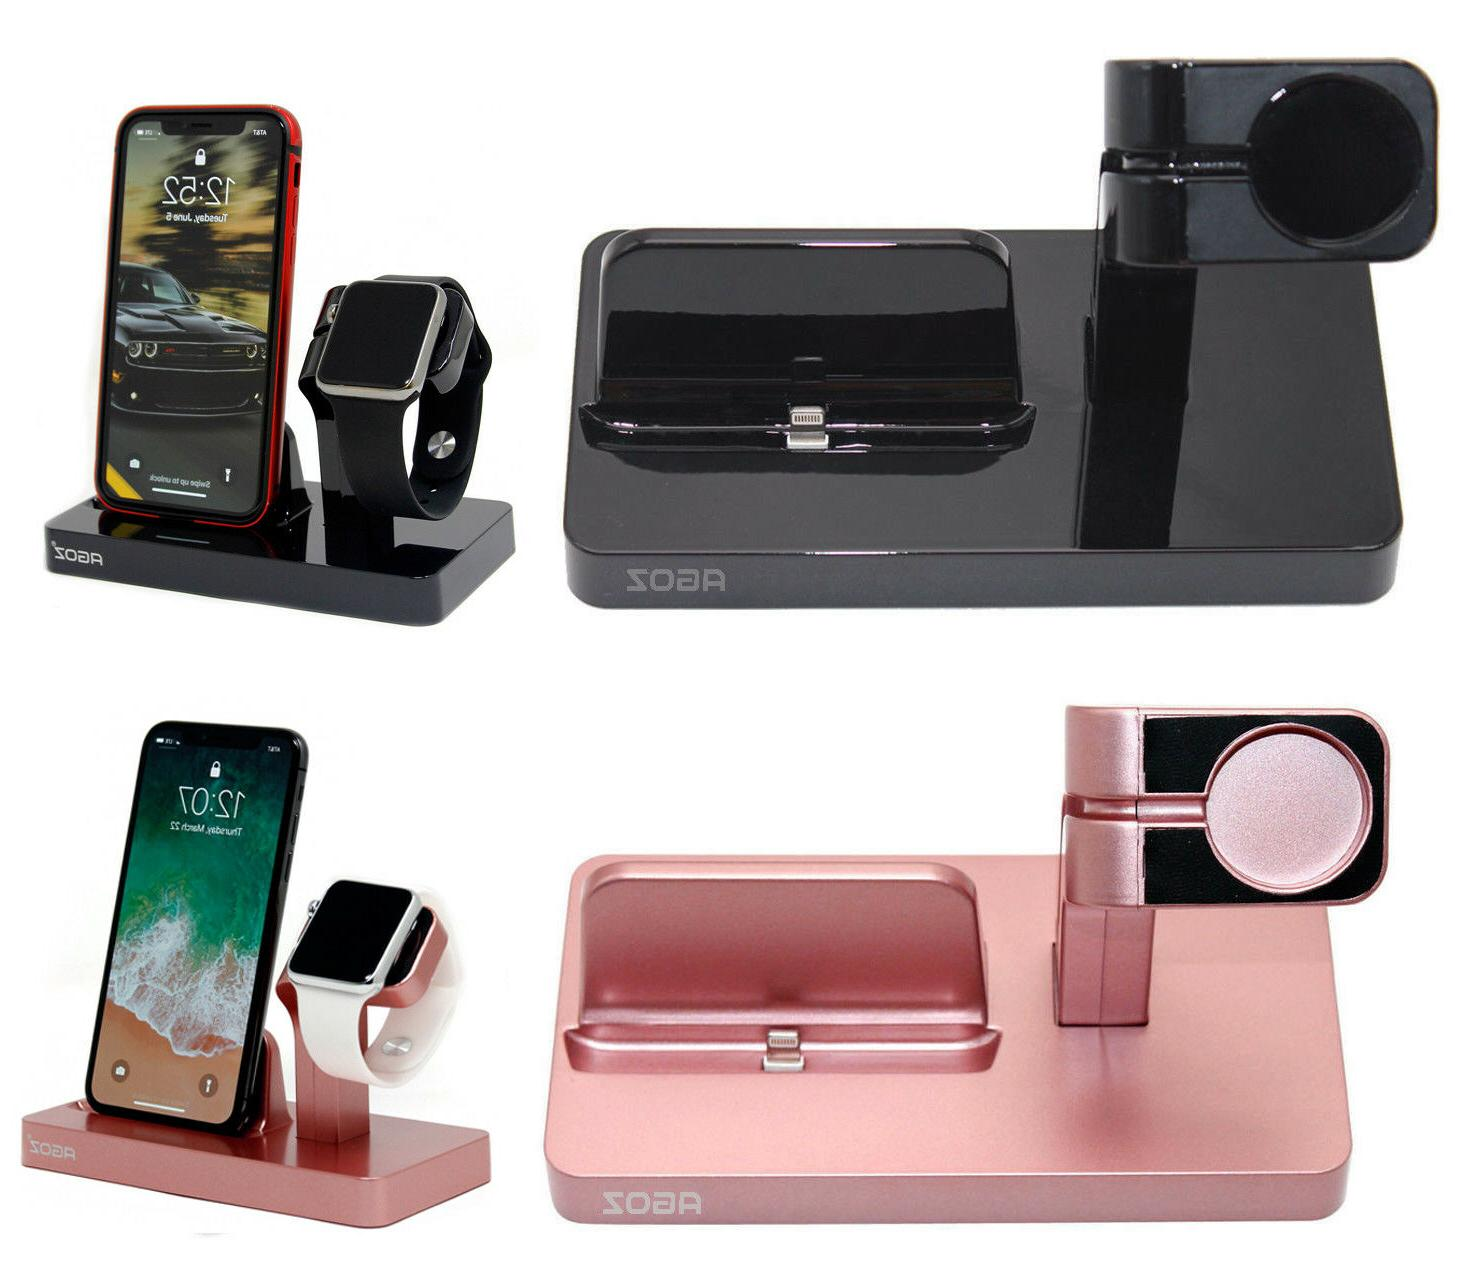 2 in 1 fast charge dock station